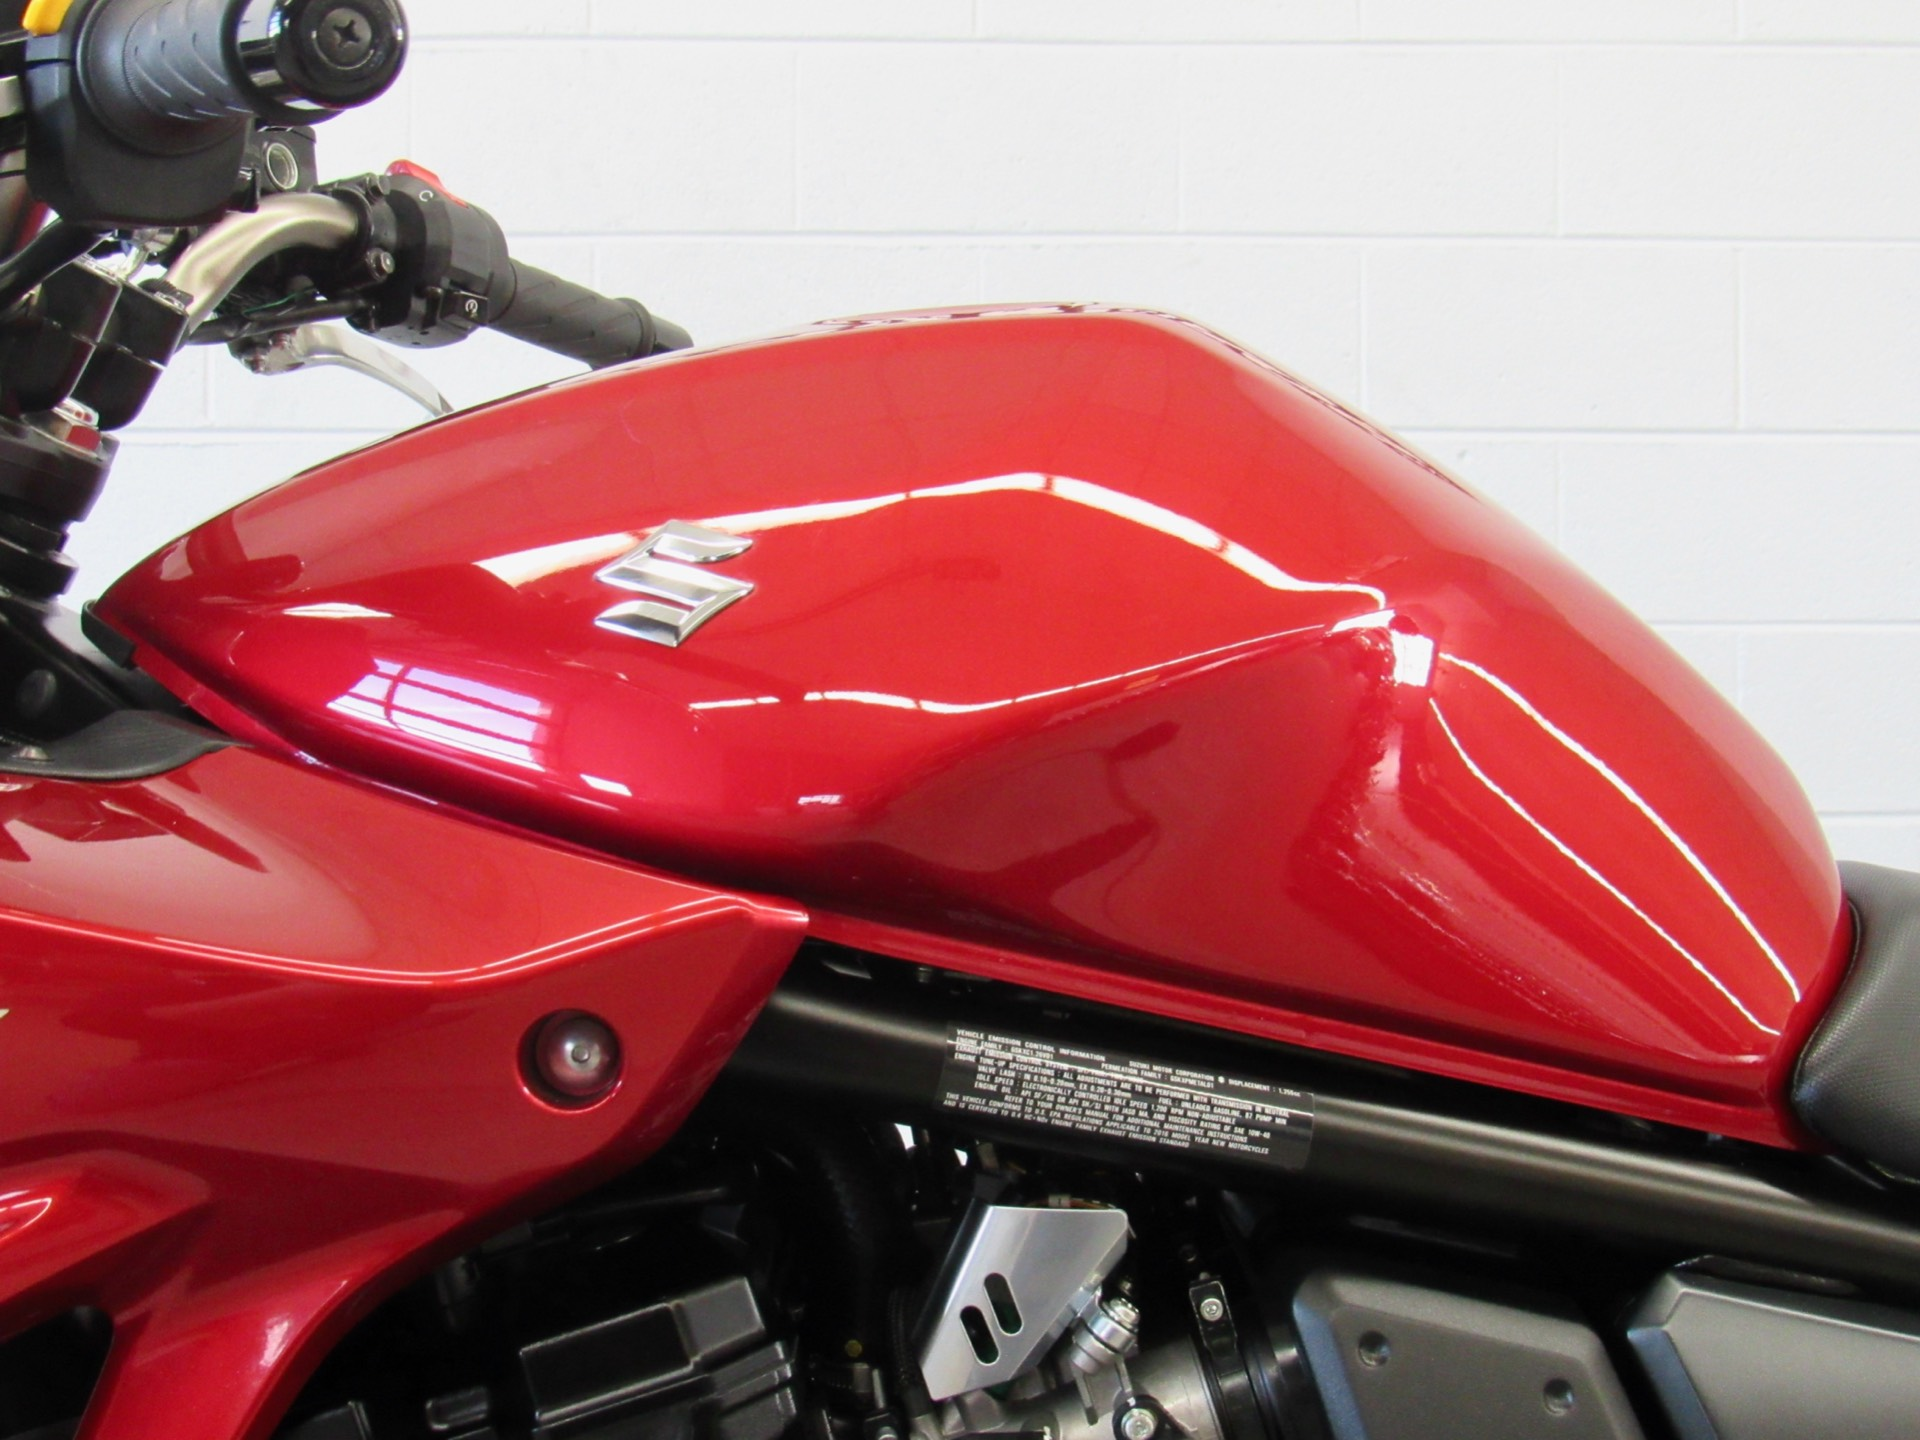 2016 Suzuki Bandit 1250S ABS in Fredericksburg, Virginia - Photo 18